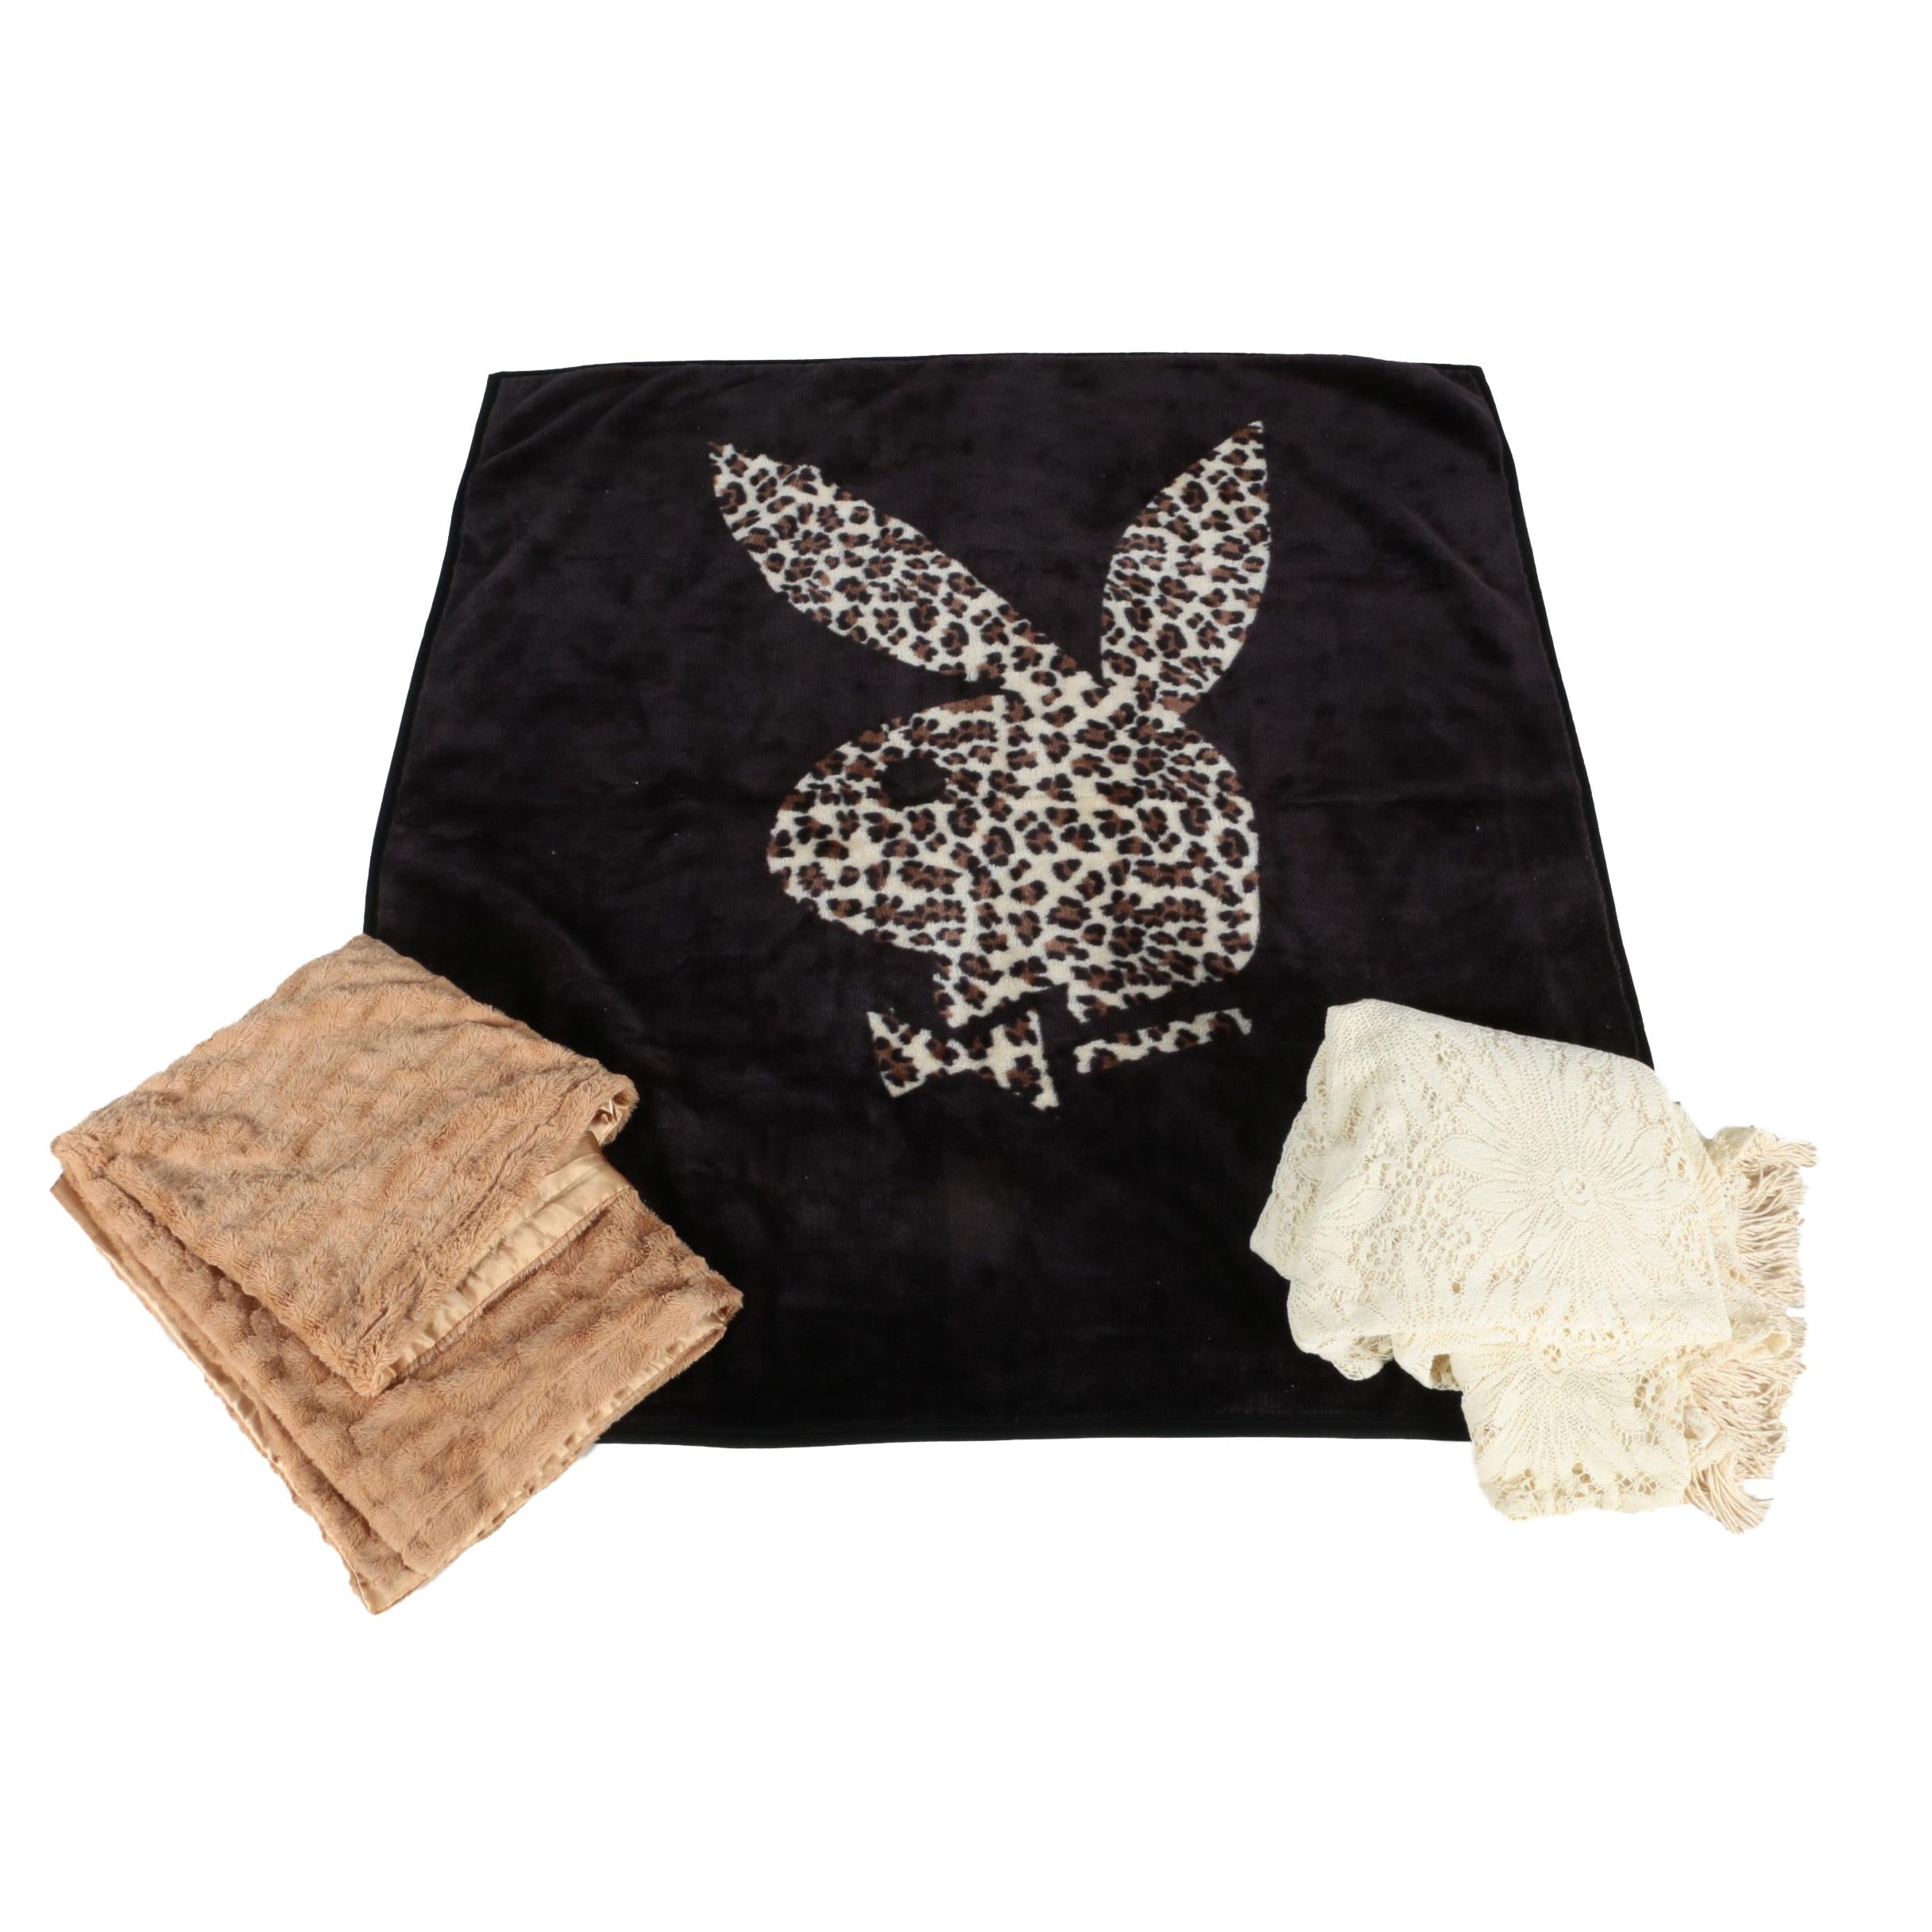 Plush Blankets Featuring Playboy and a Lace Bedspread